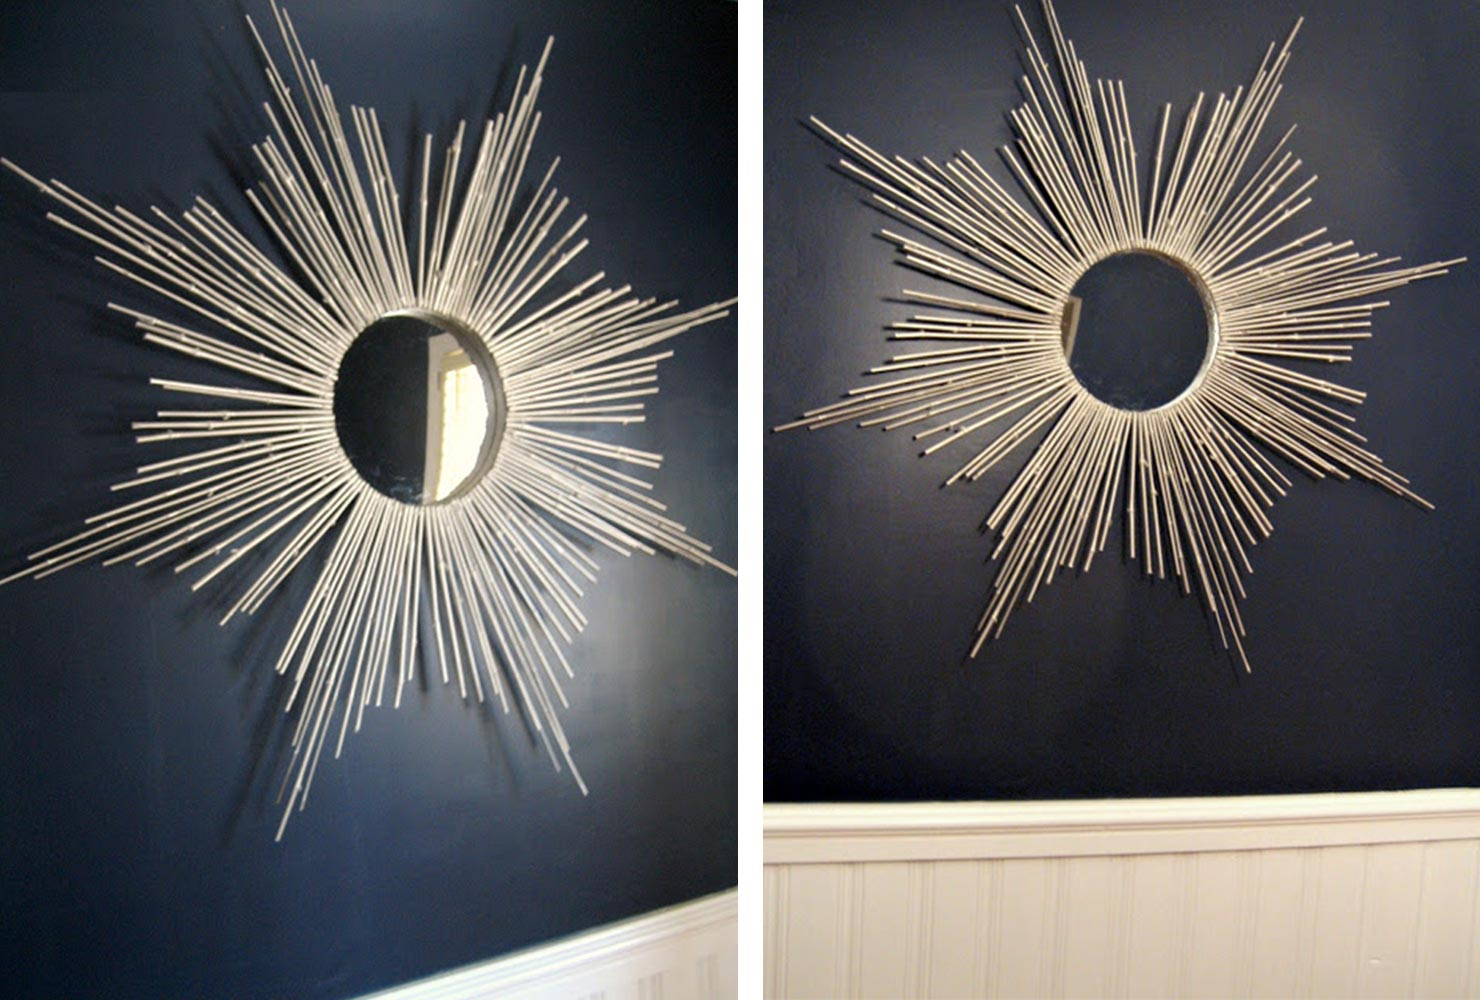 Shutterfly Within Recent Belle Circular Scroll Wall Decor (Gallery 20 of 20)